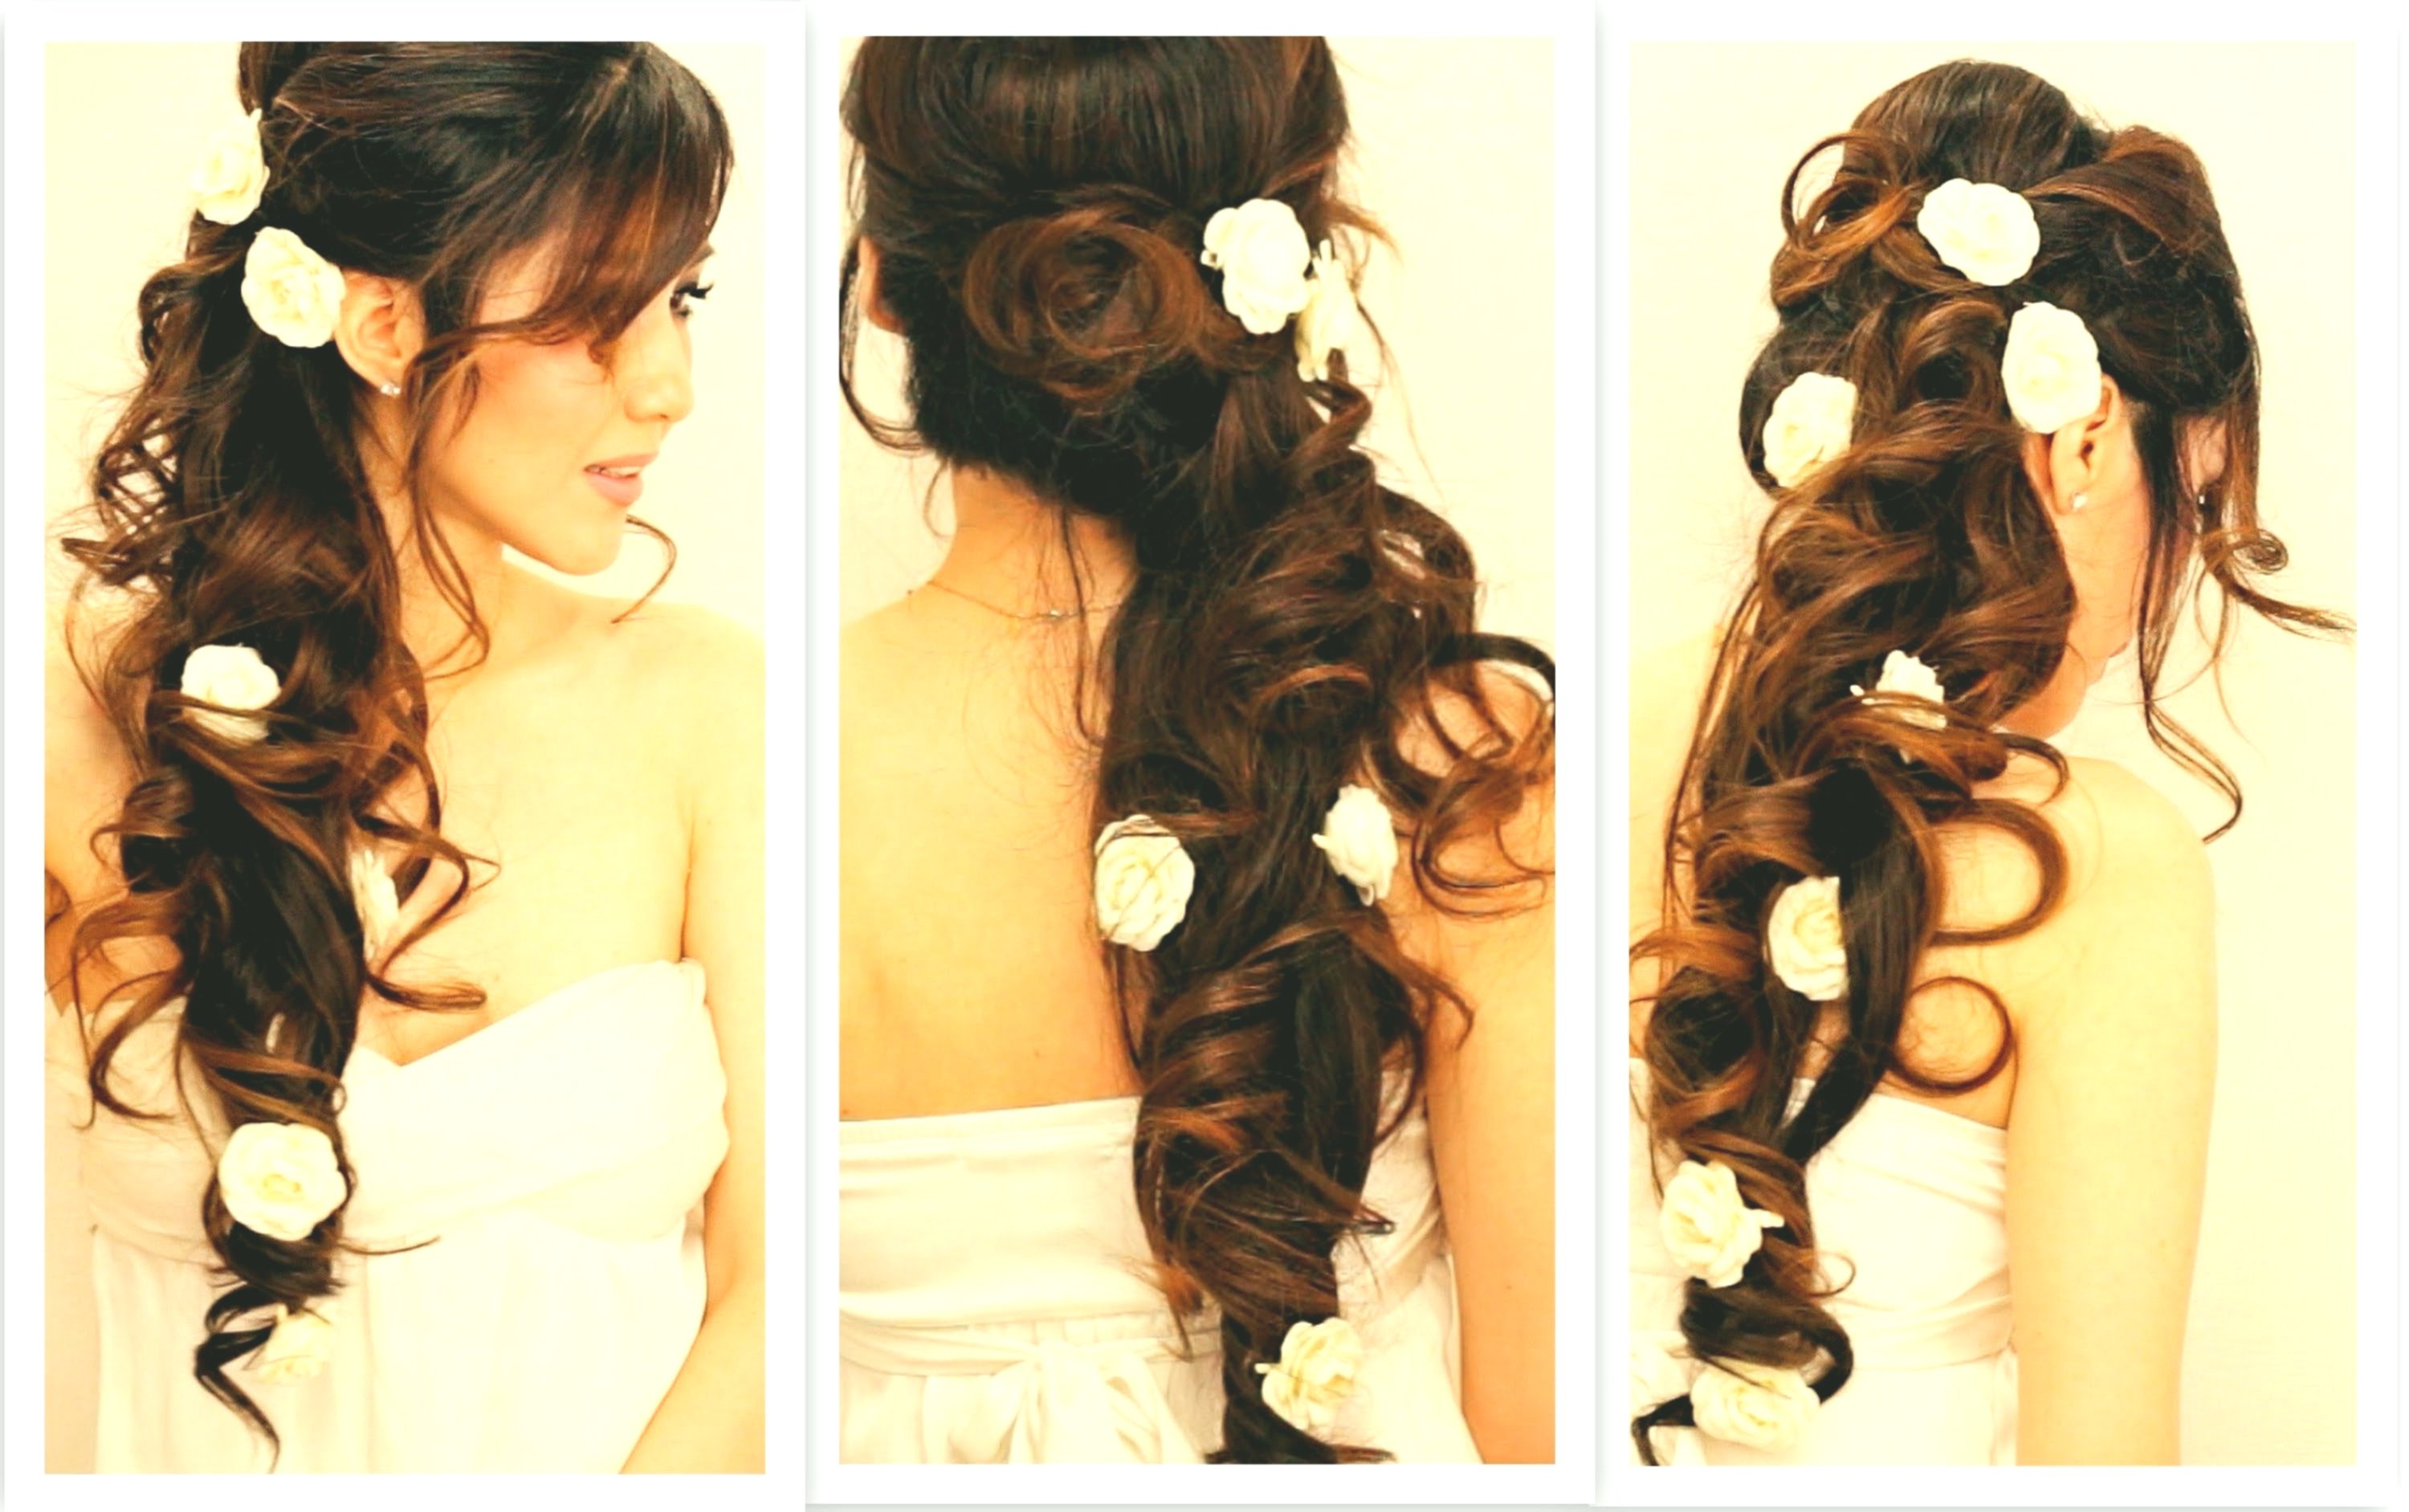 finest hairstyles for girls inspiration-Stylish Hairstyles For Girls Gallery